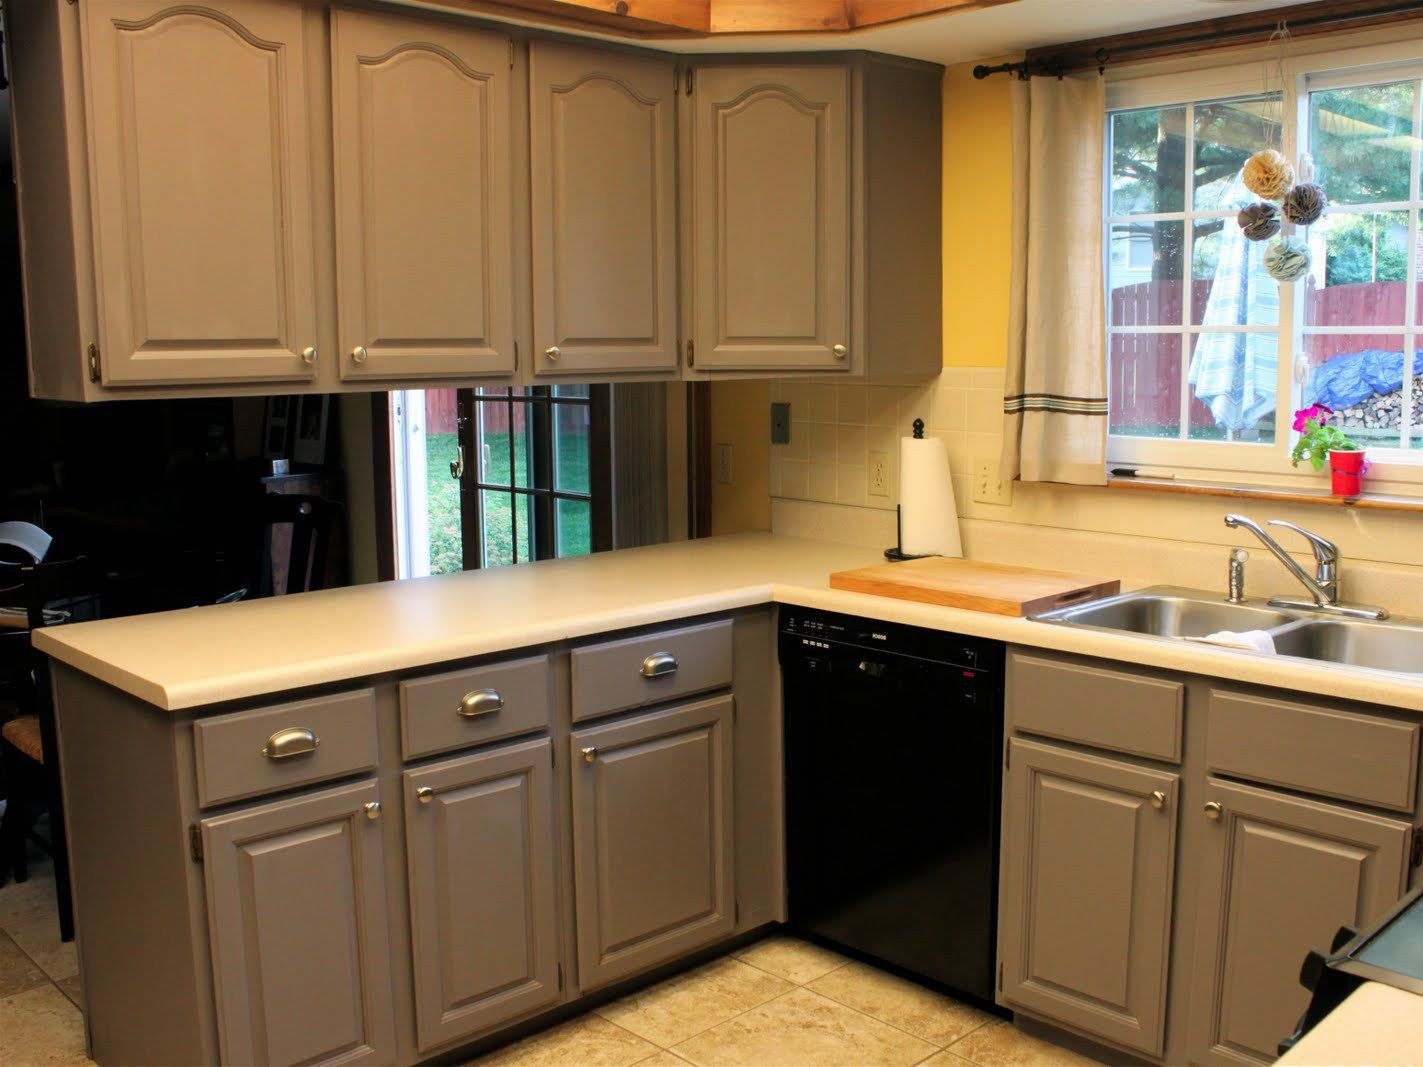 Best Diy Kitchen Cabinet Ideas And Designs For 2019 And Diy Kitchen Cabinets Ottawa Two To Diy Kitchen Cabinets Painting Kitchen Cabinets Diy Kitchen Cabinets